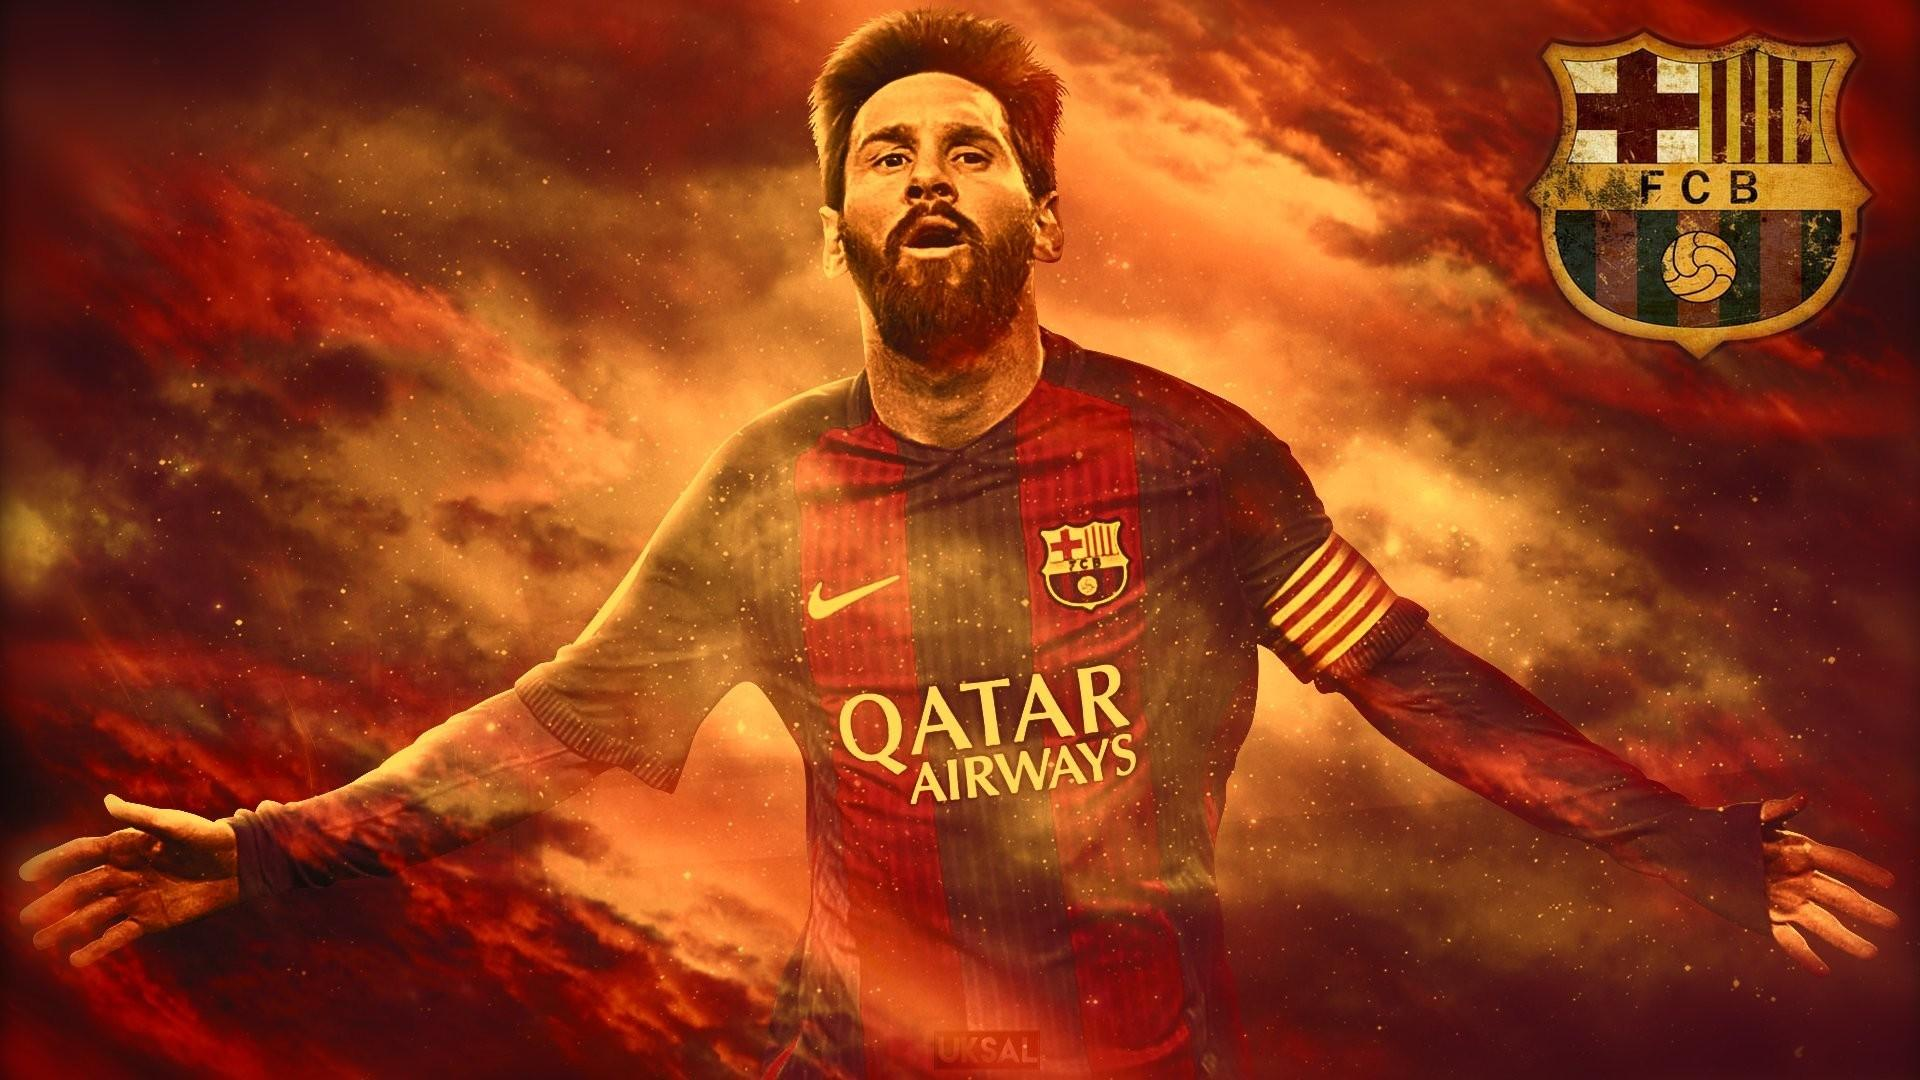 Lionel Messi Barcelona Wallpaper HD | 2019 Football Wallpaper